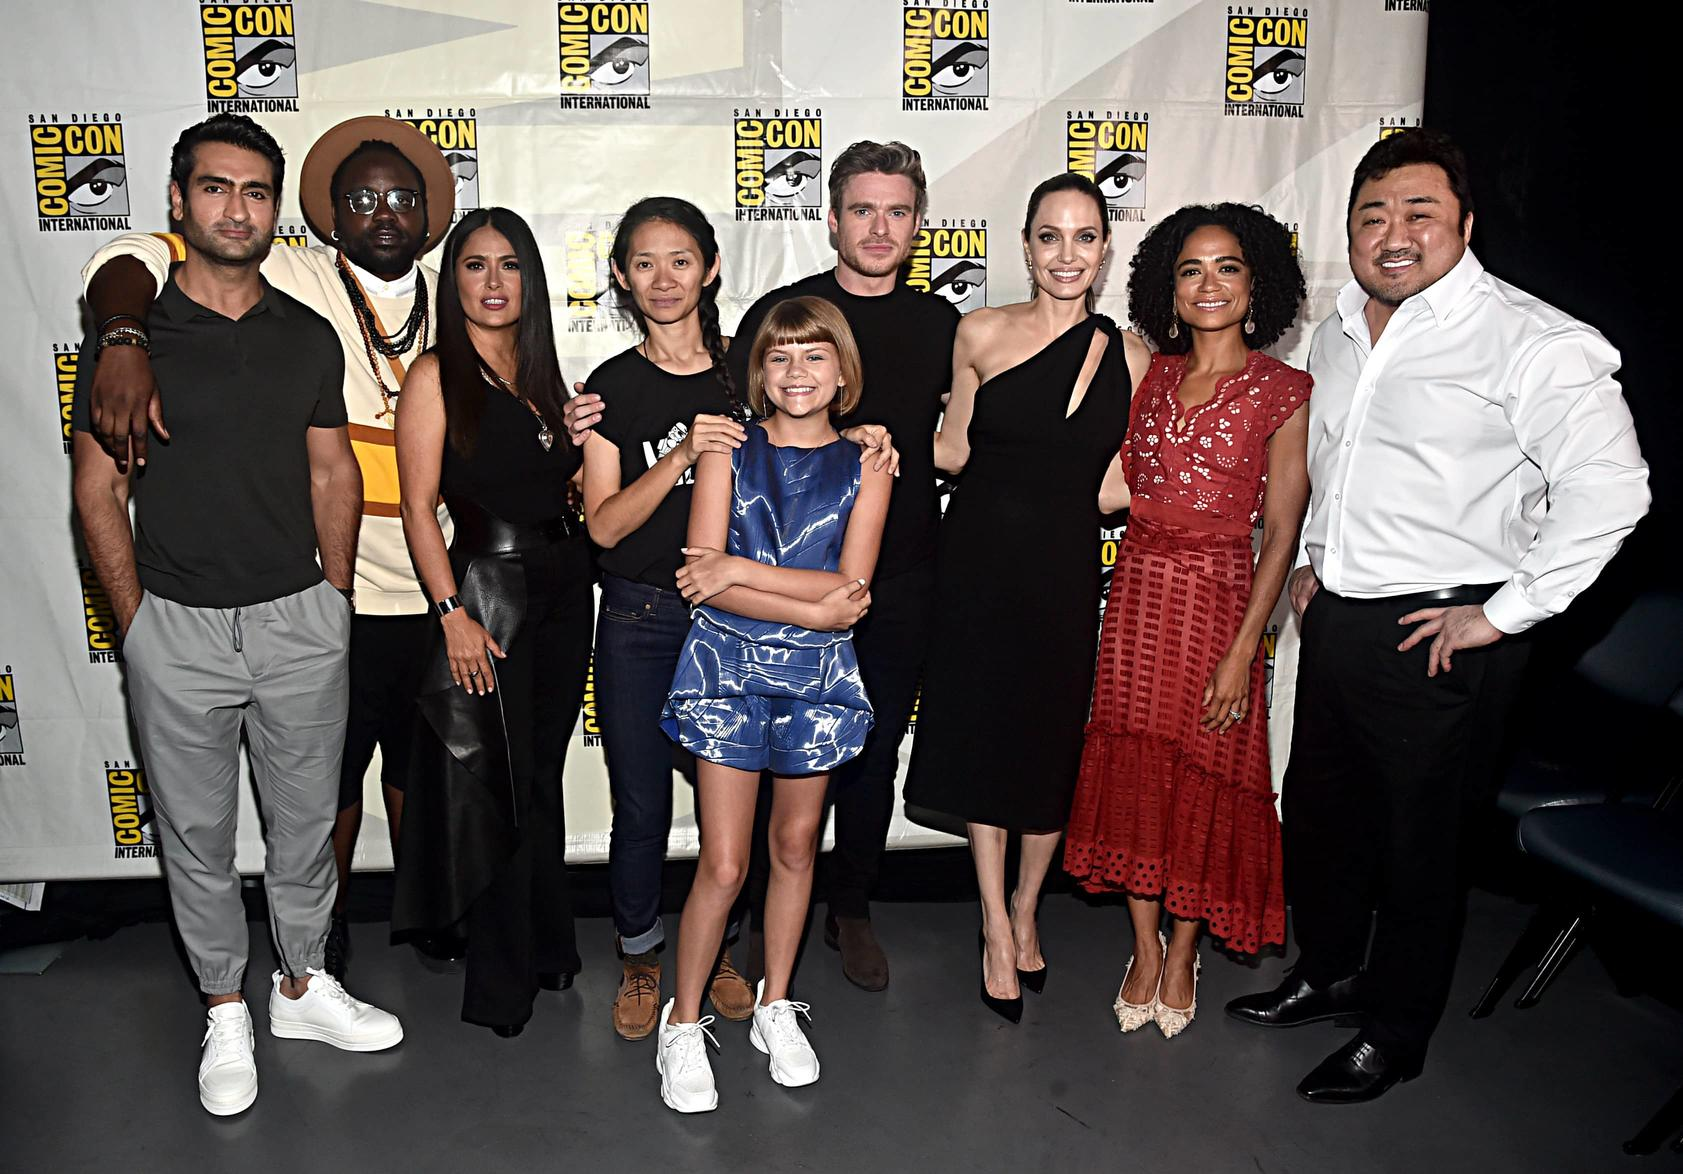 Chloé Zhao and the Cast of Eternals